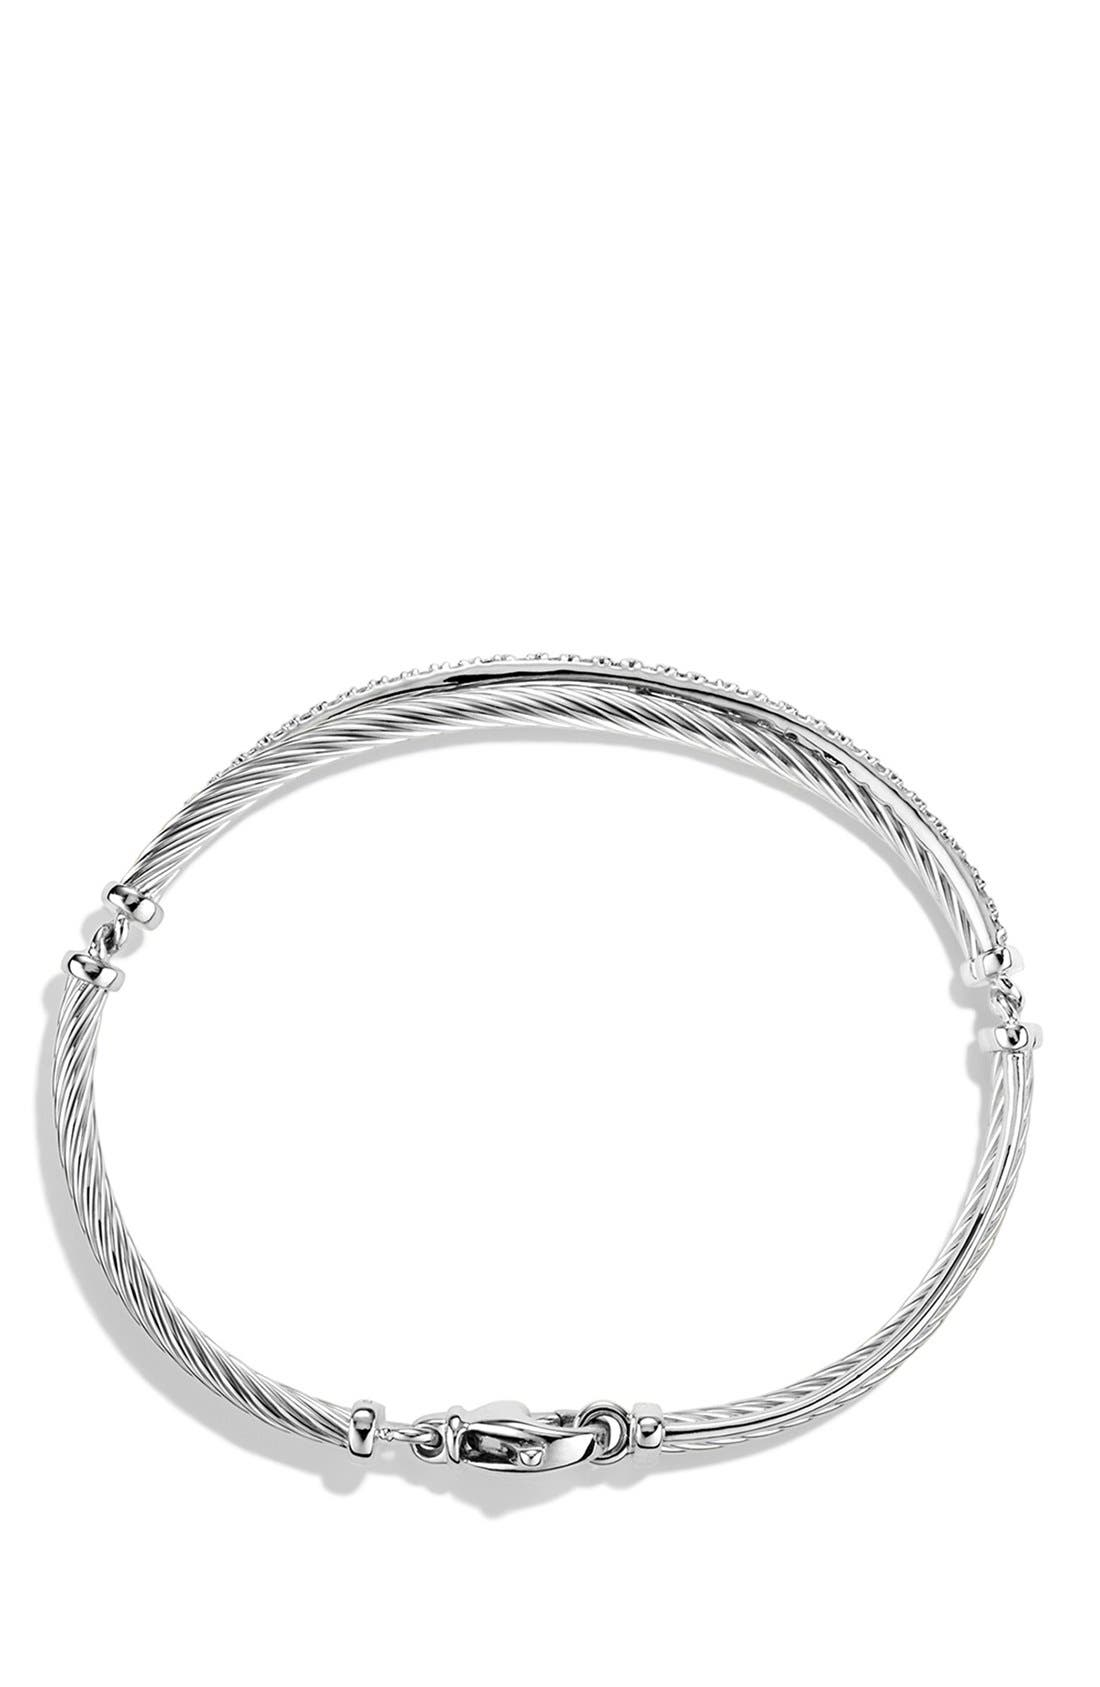 Alternate Image 2  - David Yurman 'Crossover' Bracelet with Diamonds